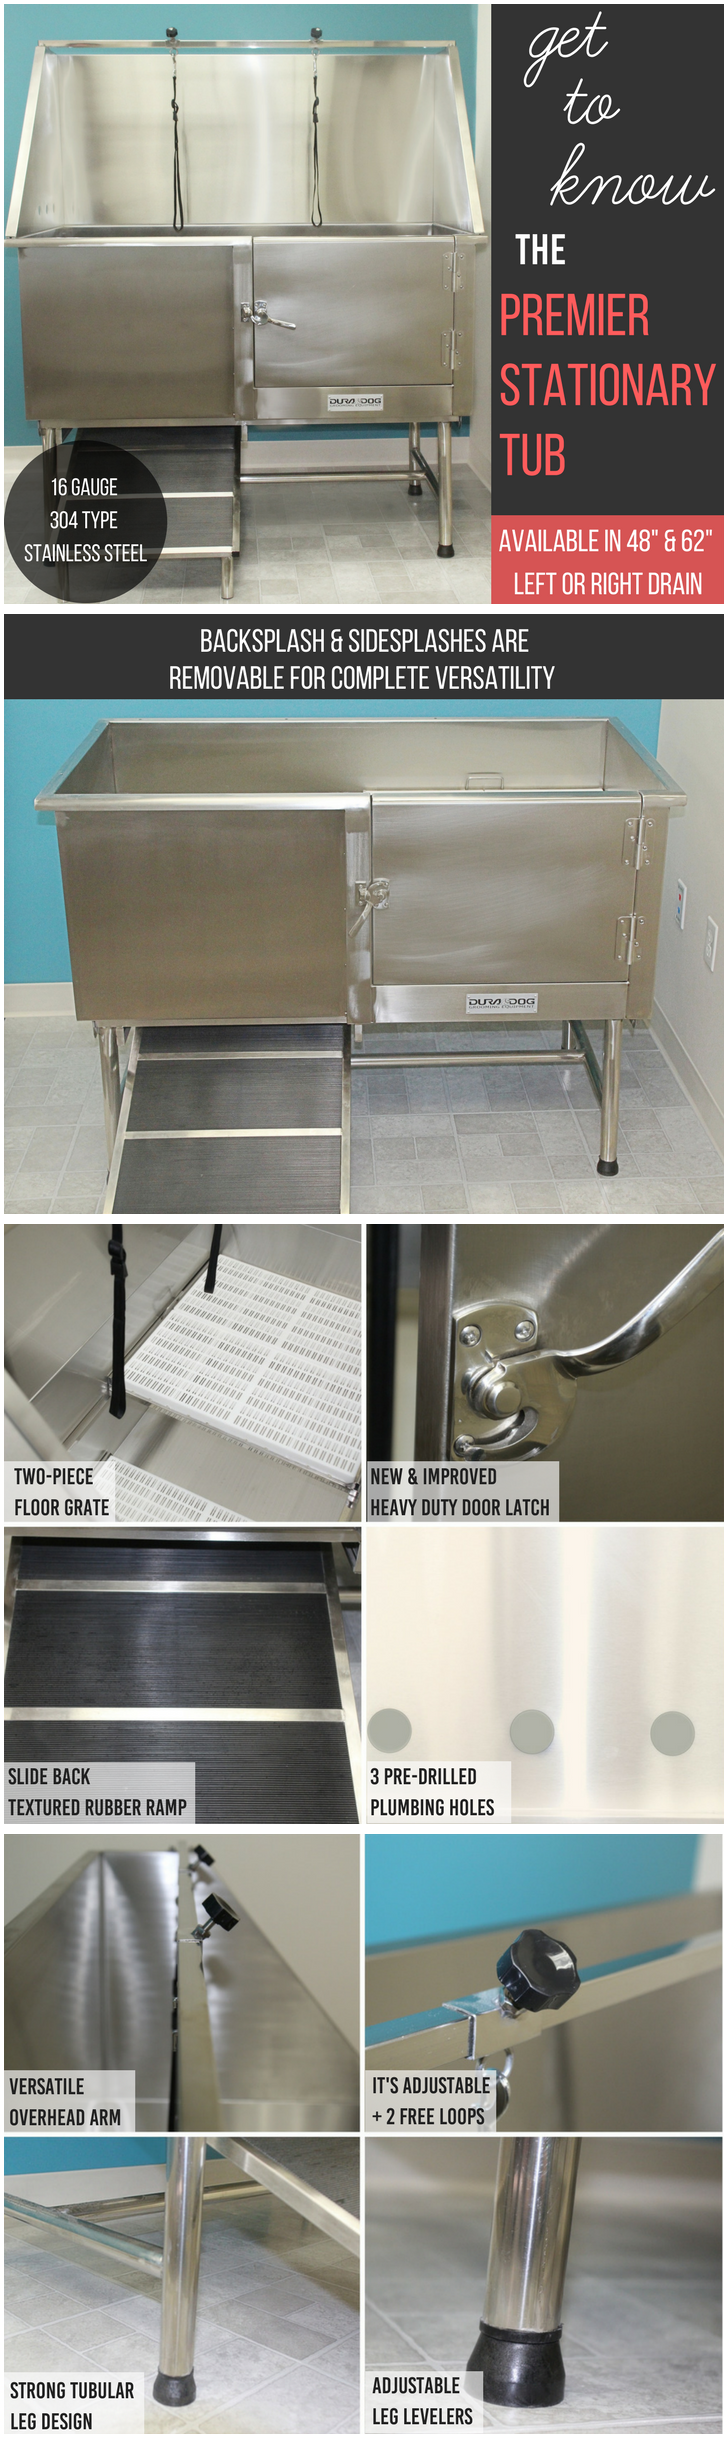 Dura Dog Premier Stationary Stainless Steel Tub 48\